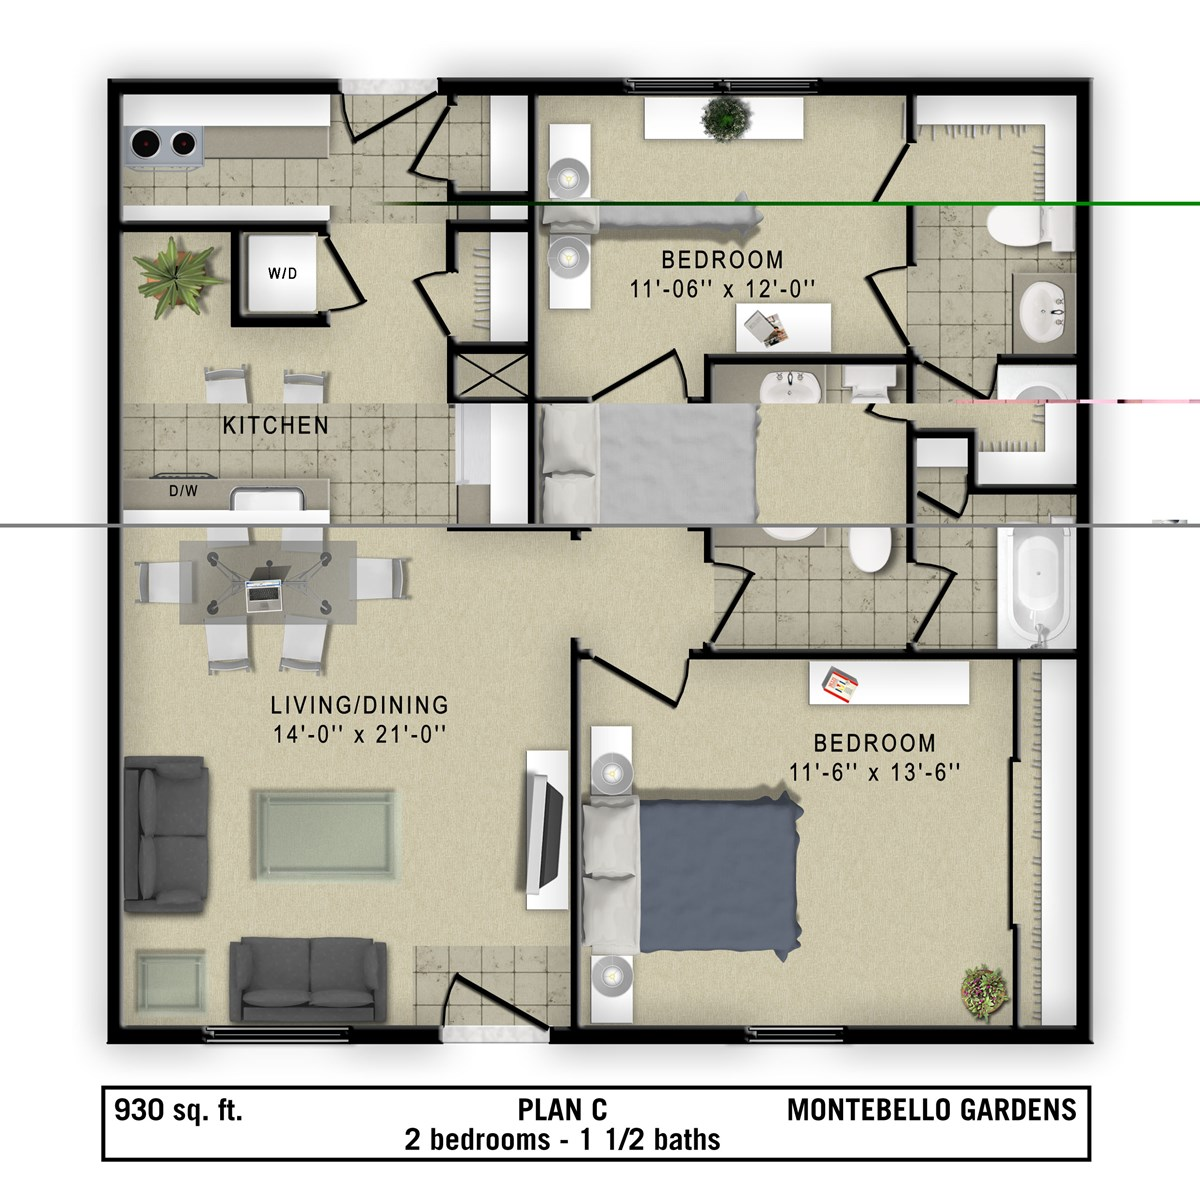 930 sq. ft. Torino floor plan